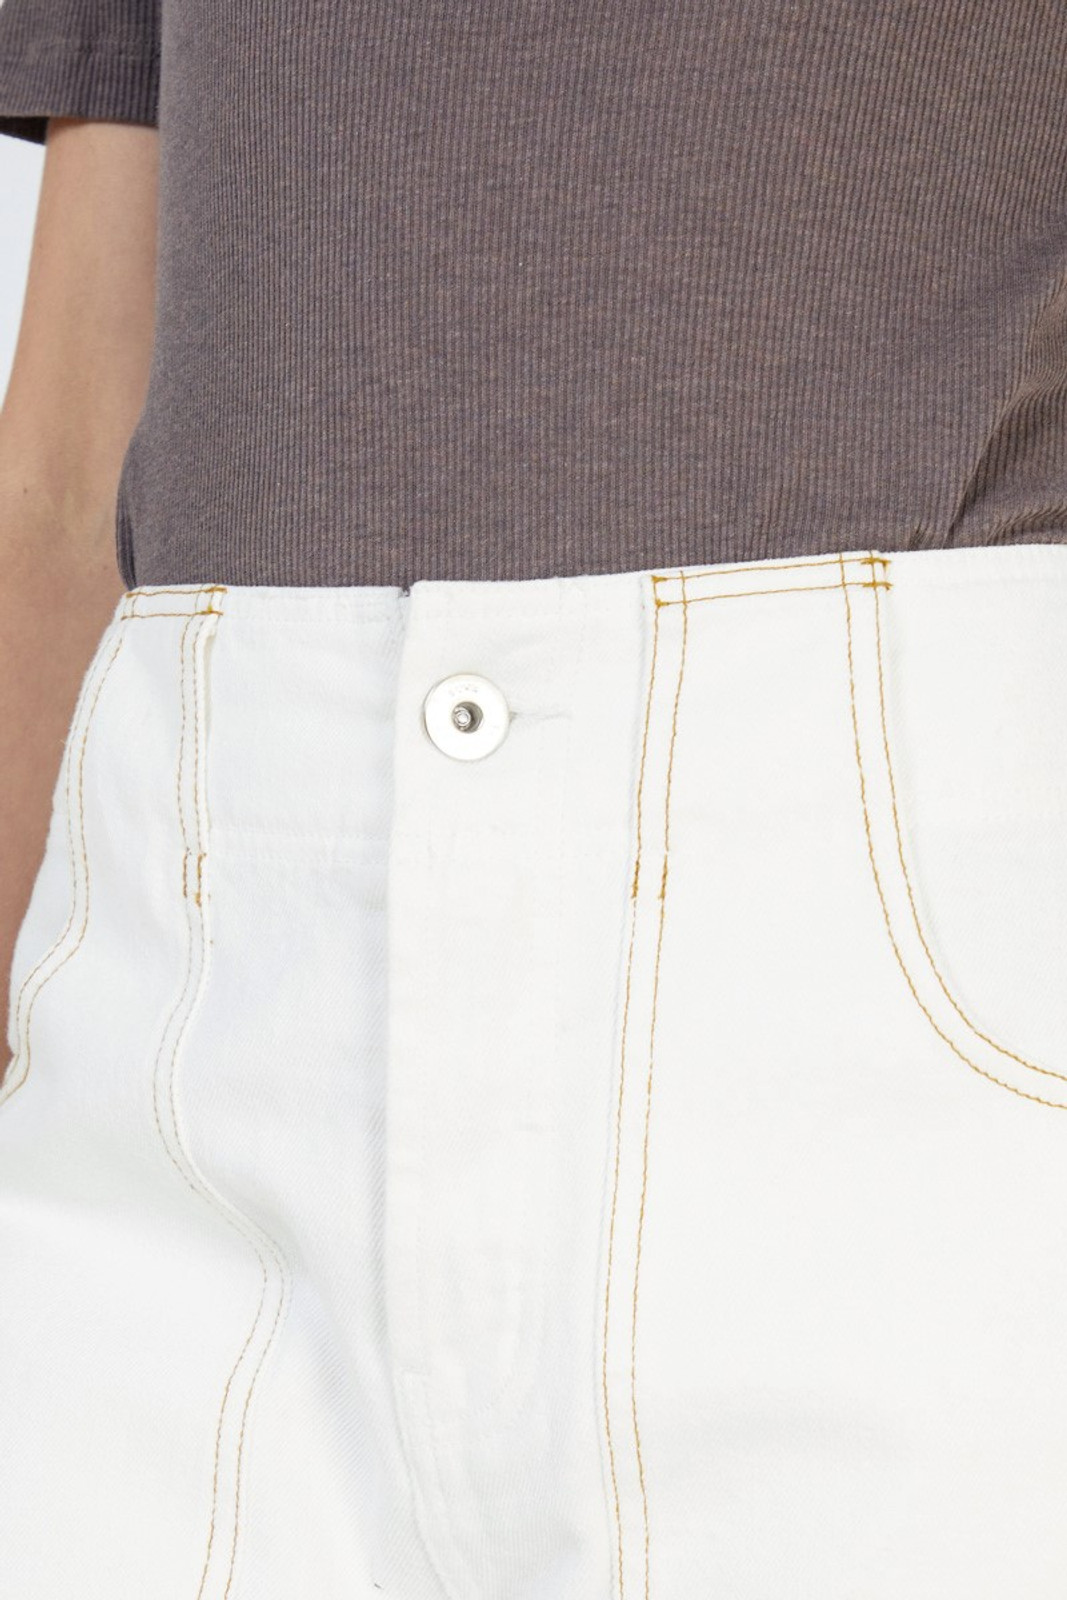 Elka Collective Coastal Jean White  5